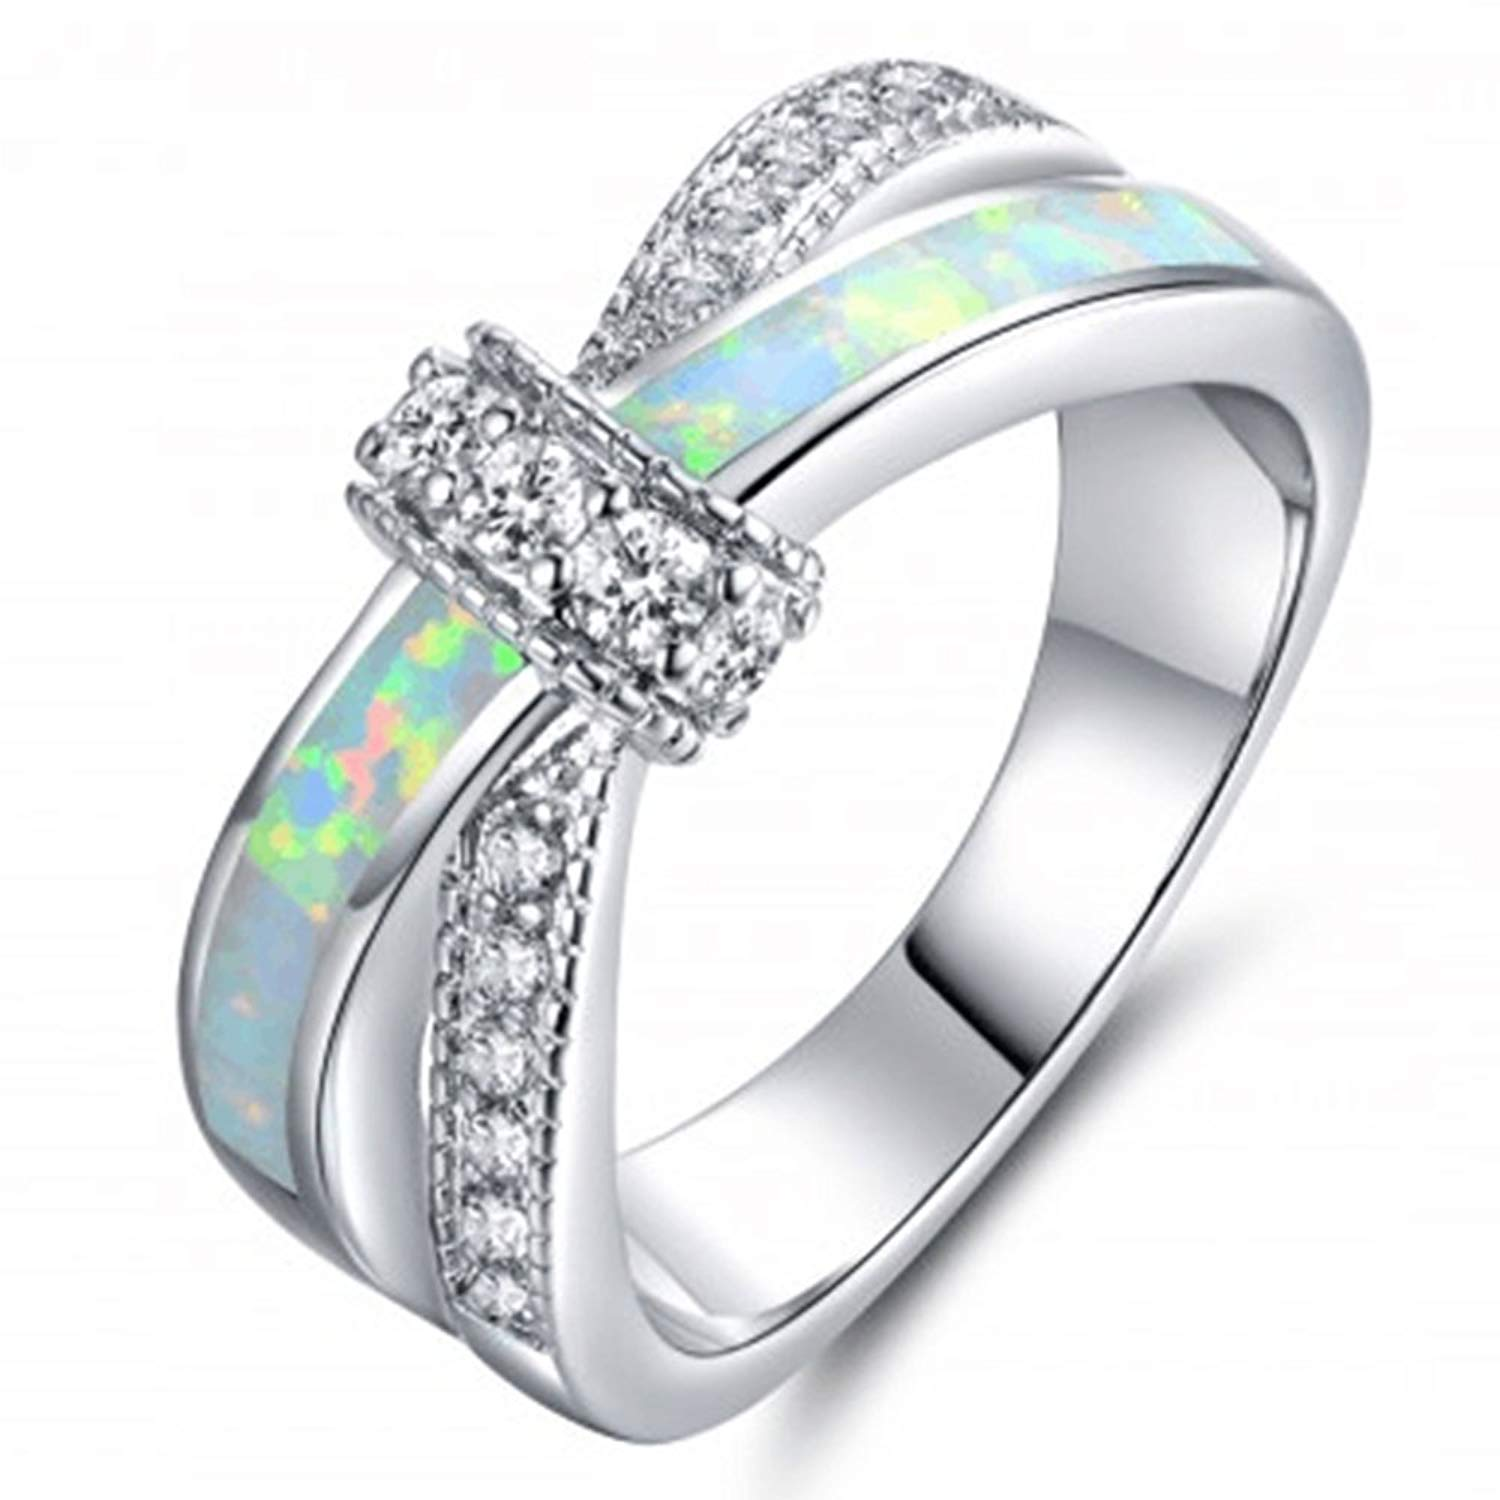 Cheap Kay Jewelers Engagement, find Kay Jewelers Engagement deals on